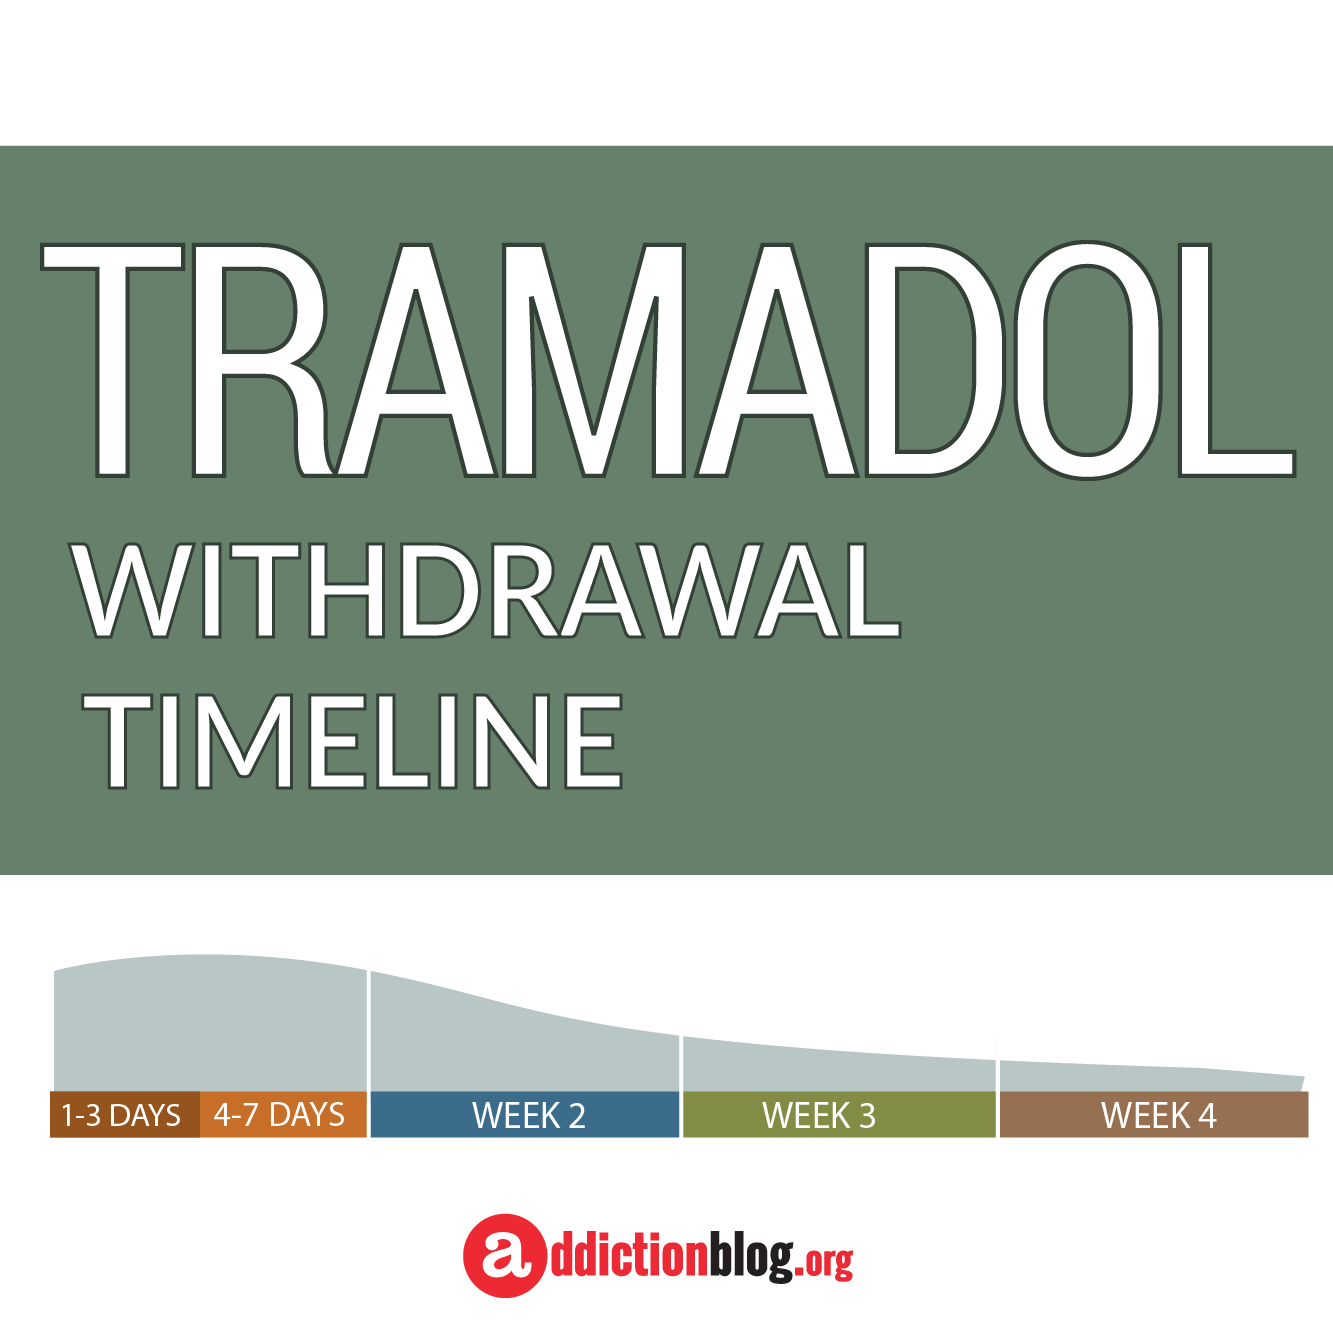 The Tramadol Withdrawal Timeline Chart